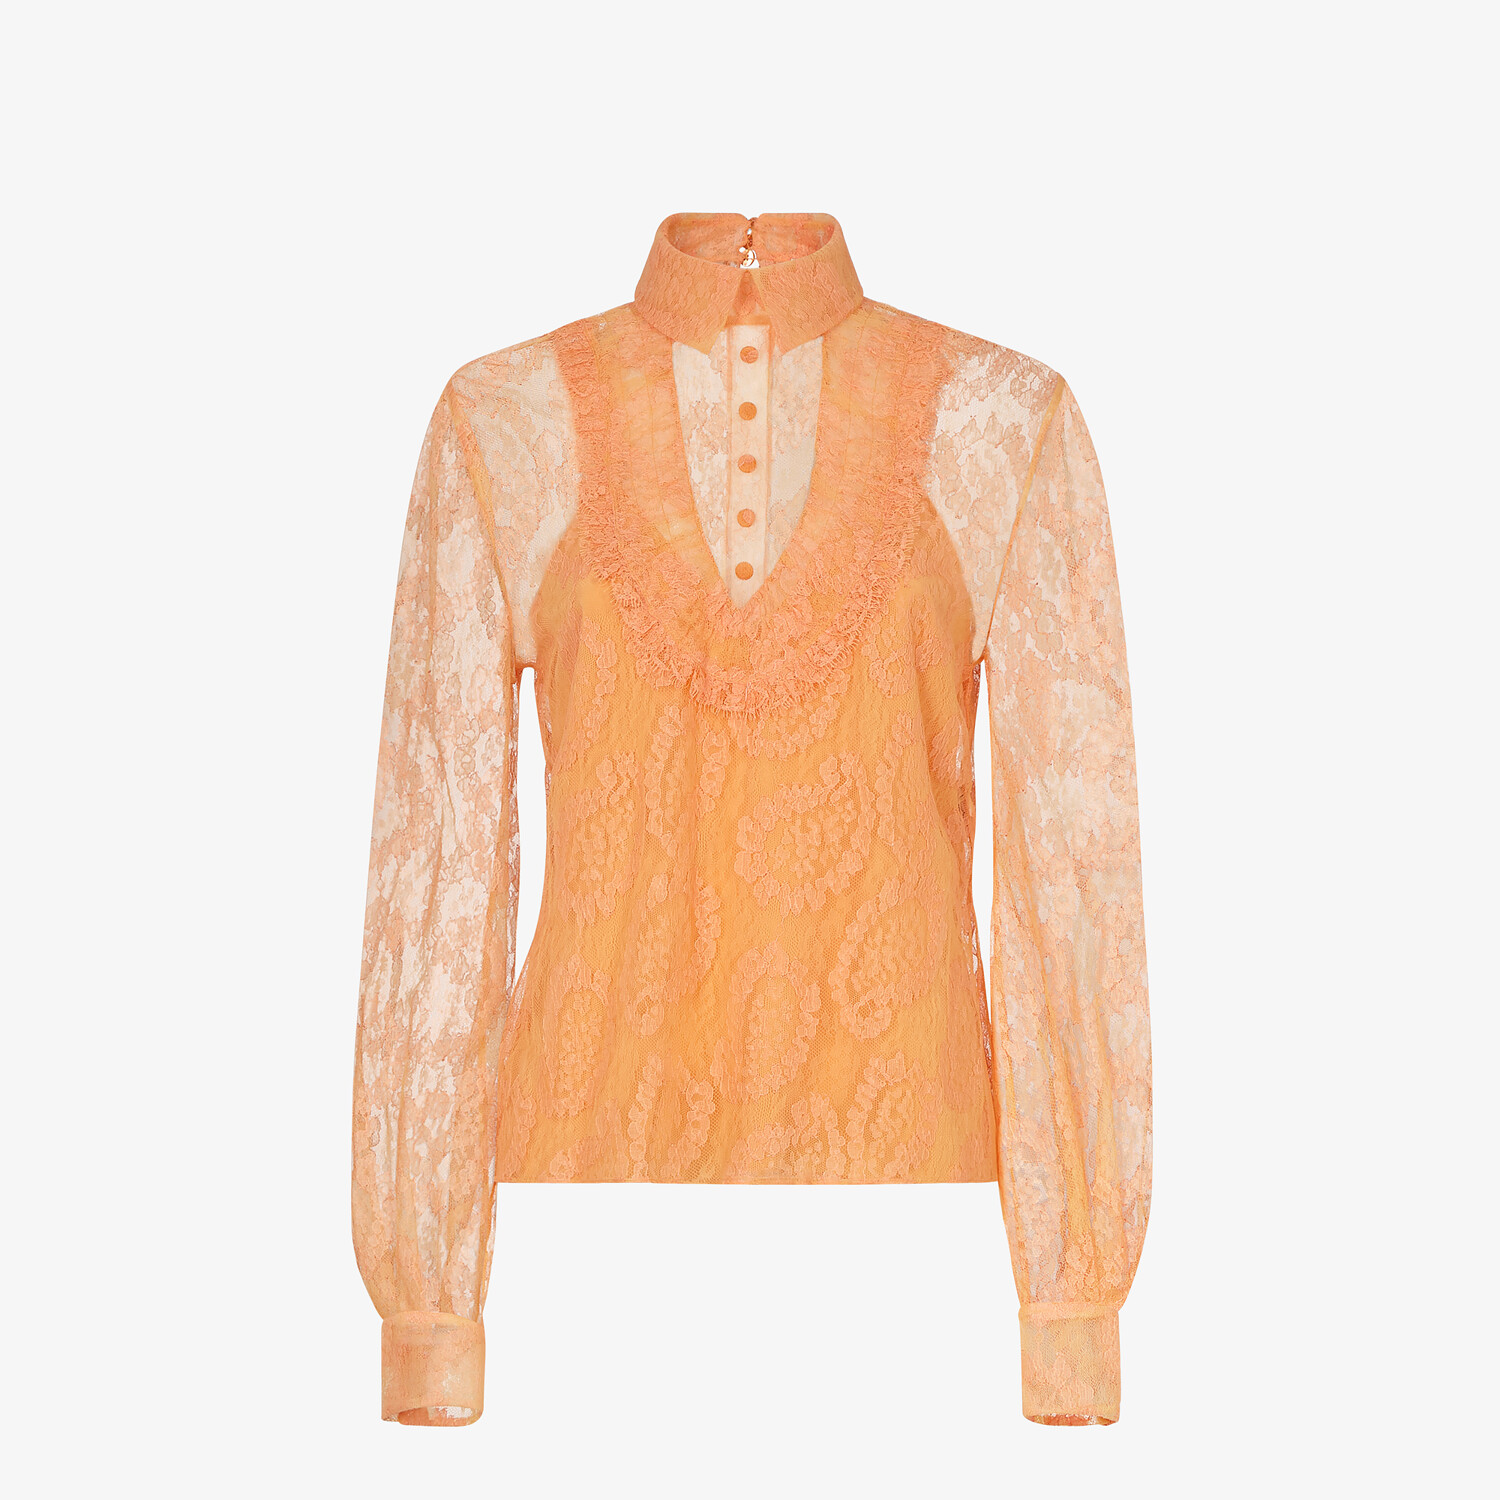 FENDI SHIRT - Orange lace blouse - view 1 detail